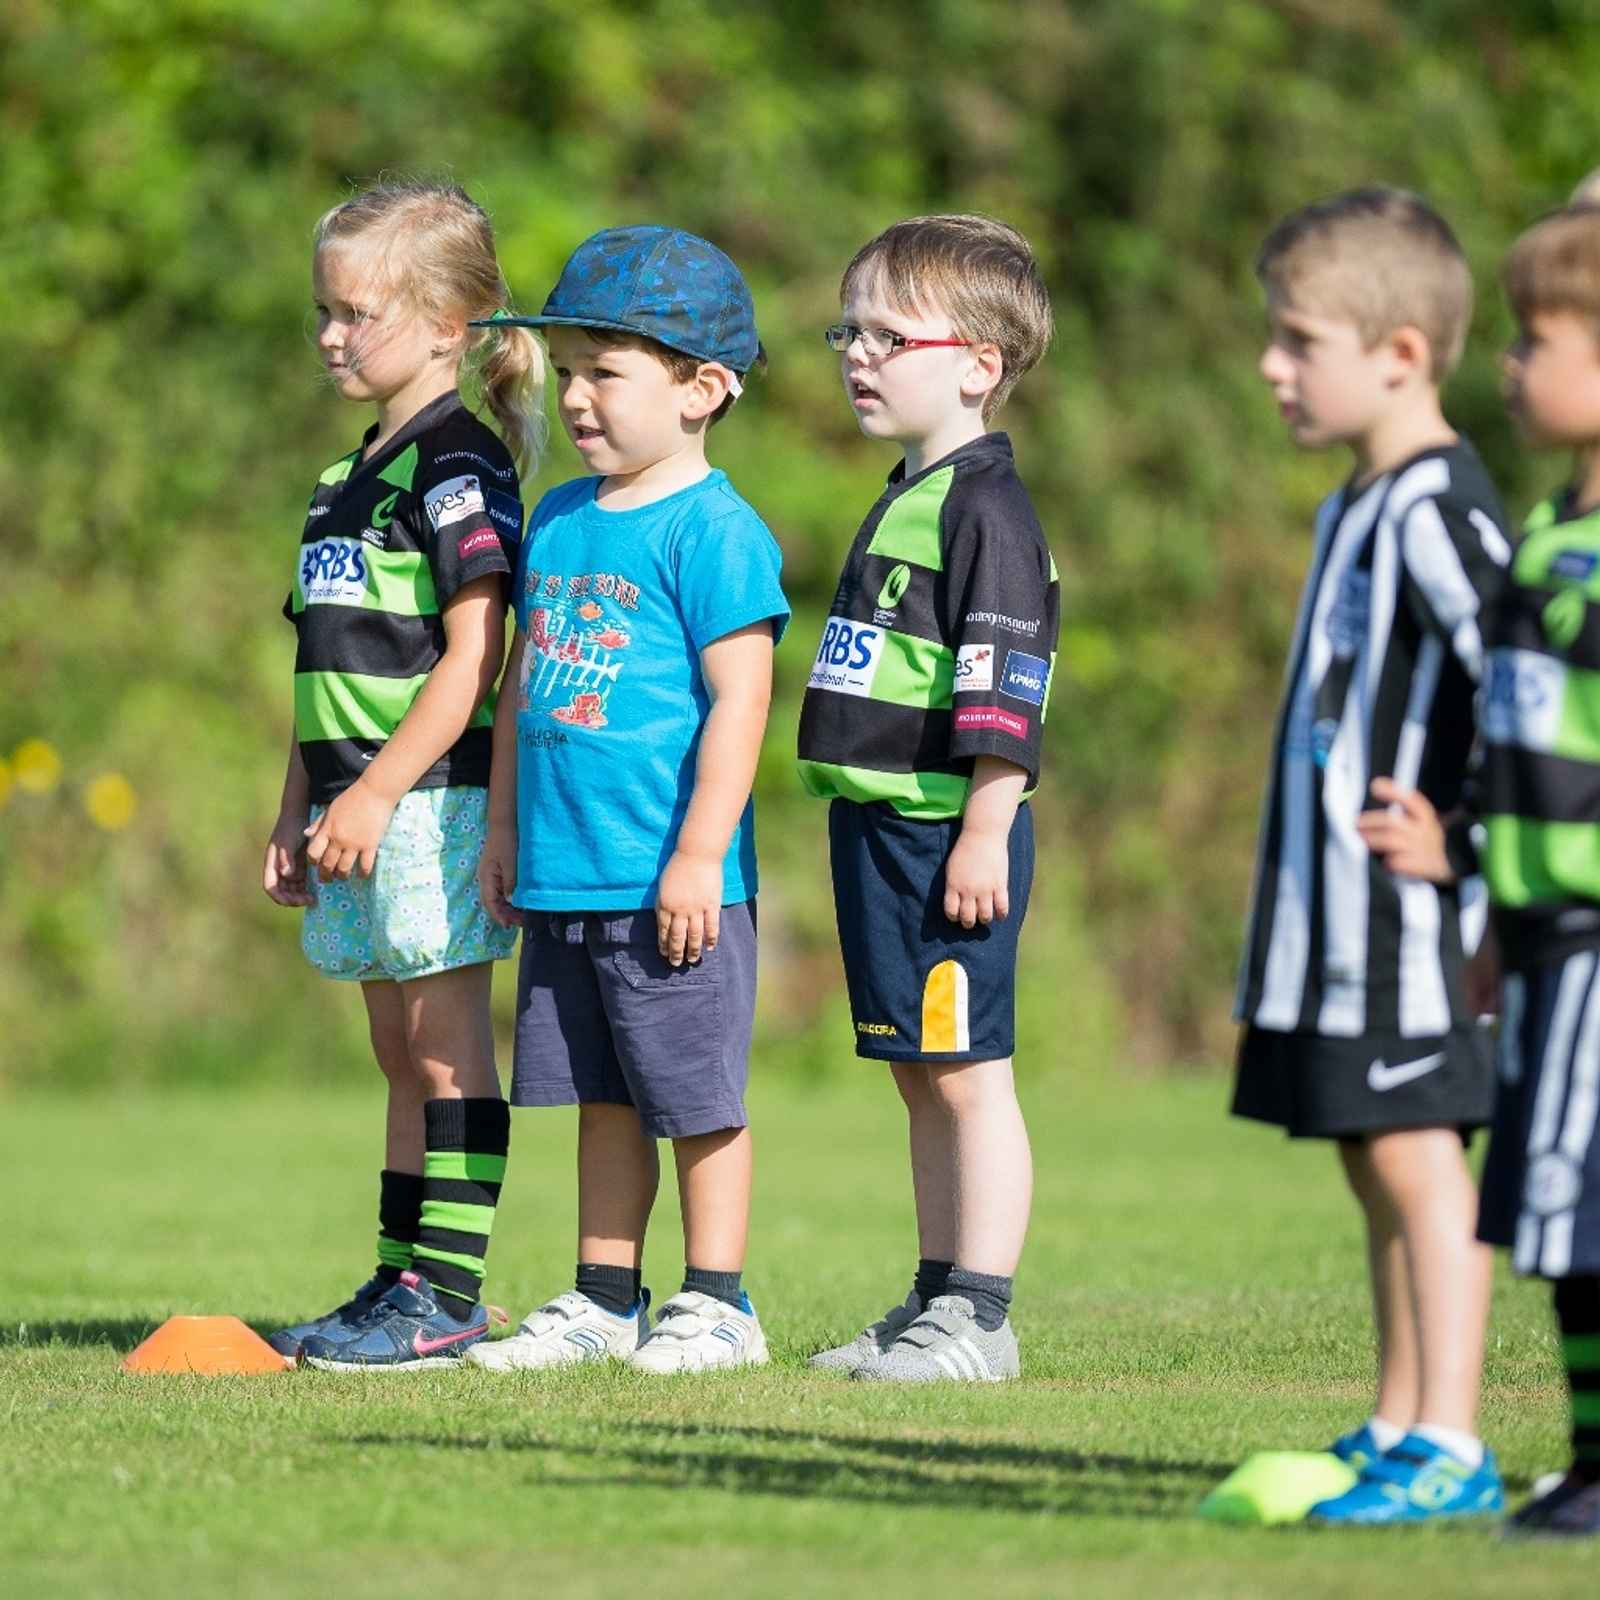 GRA Summer Rugby Camp 2016 - Training Sessions